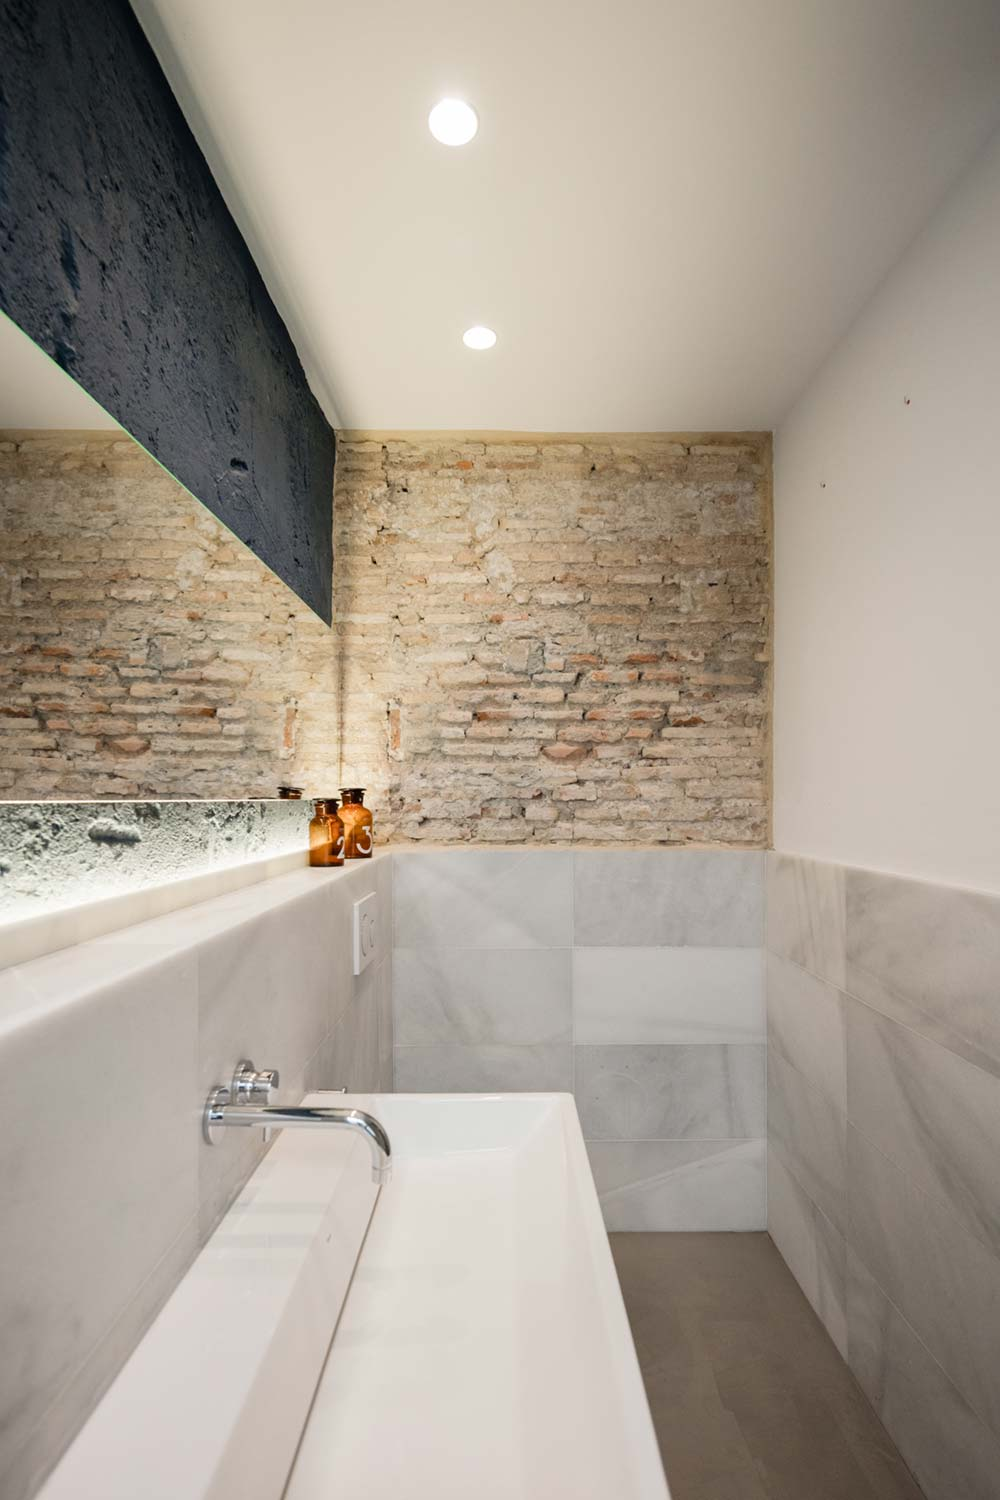 wood stone bathroom design - Apartment Musico Iturbi